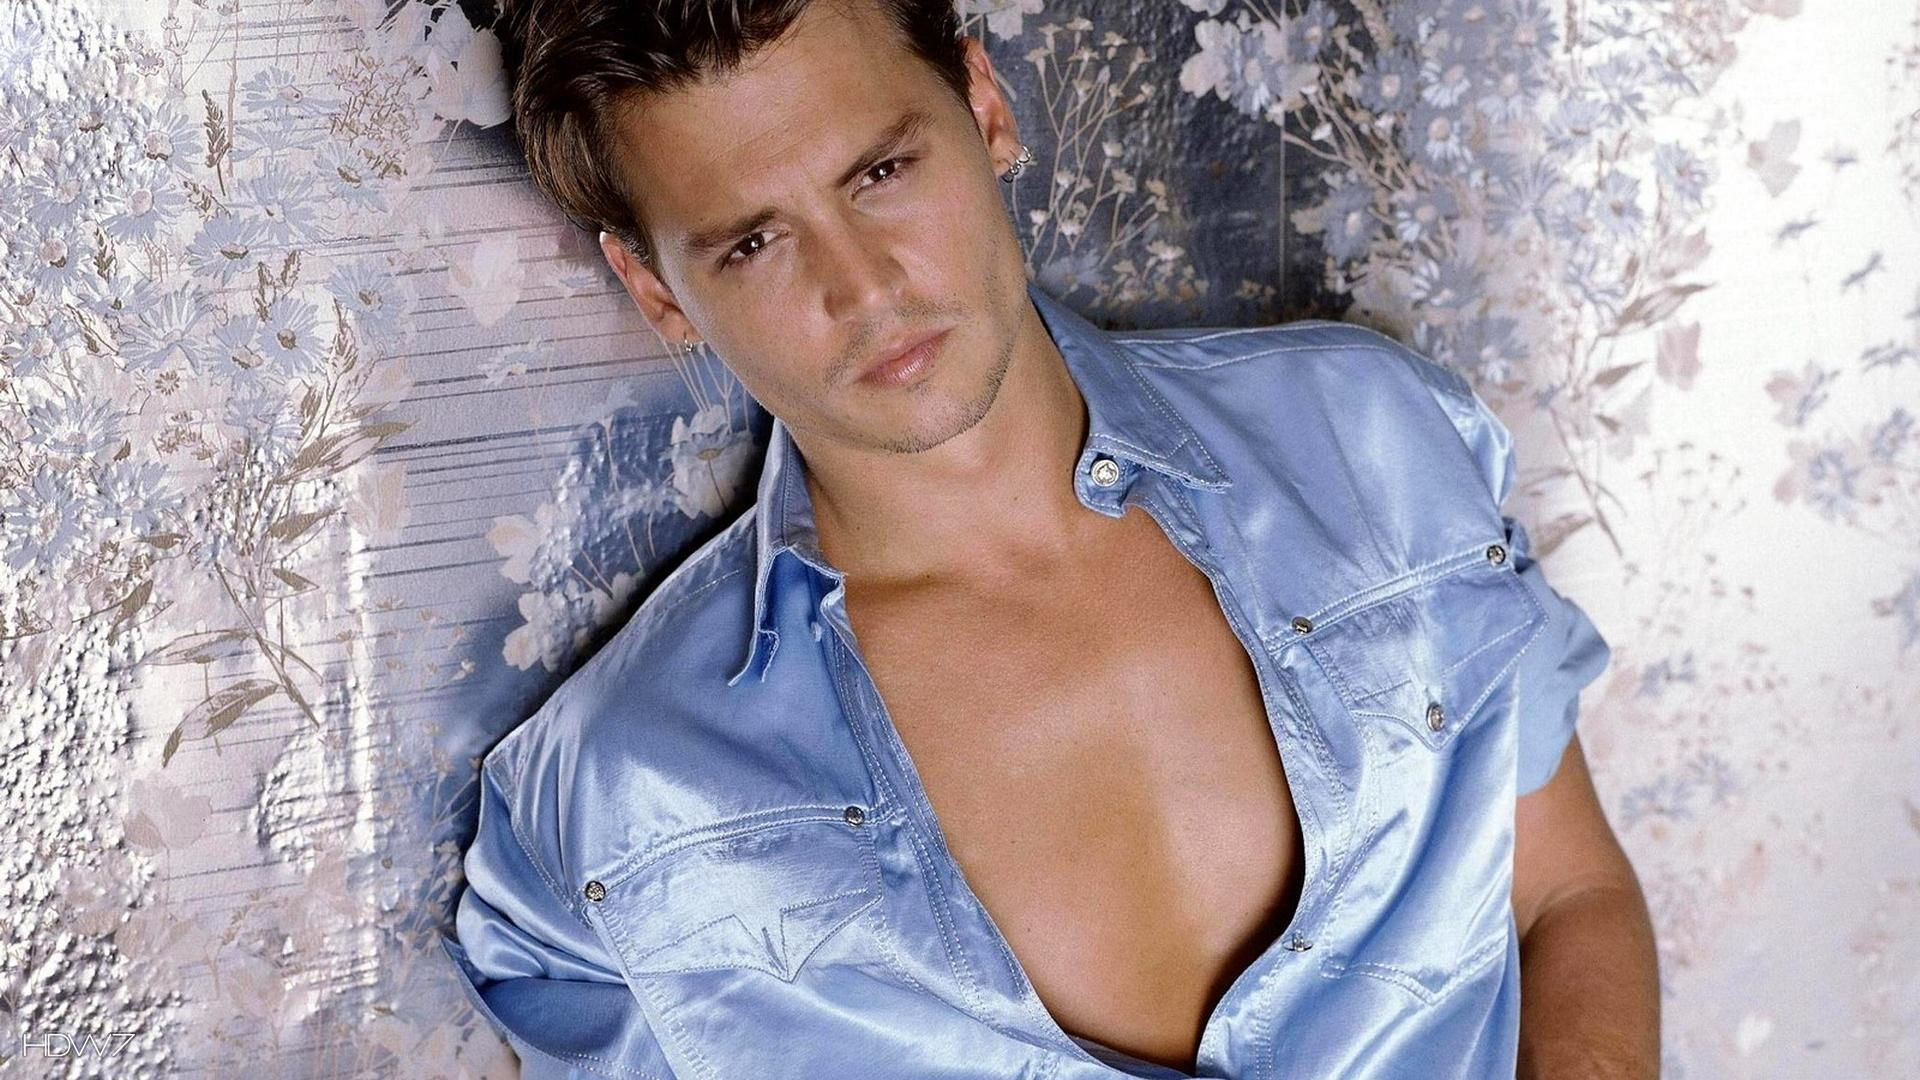 young johnny depp in blue shirt glamorous celebrity wallpaper